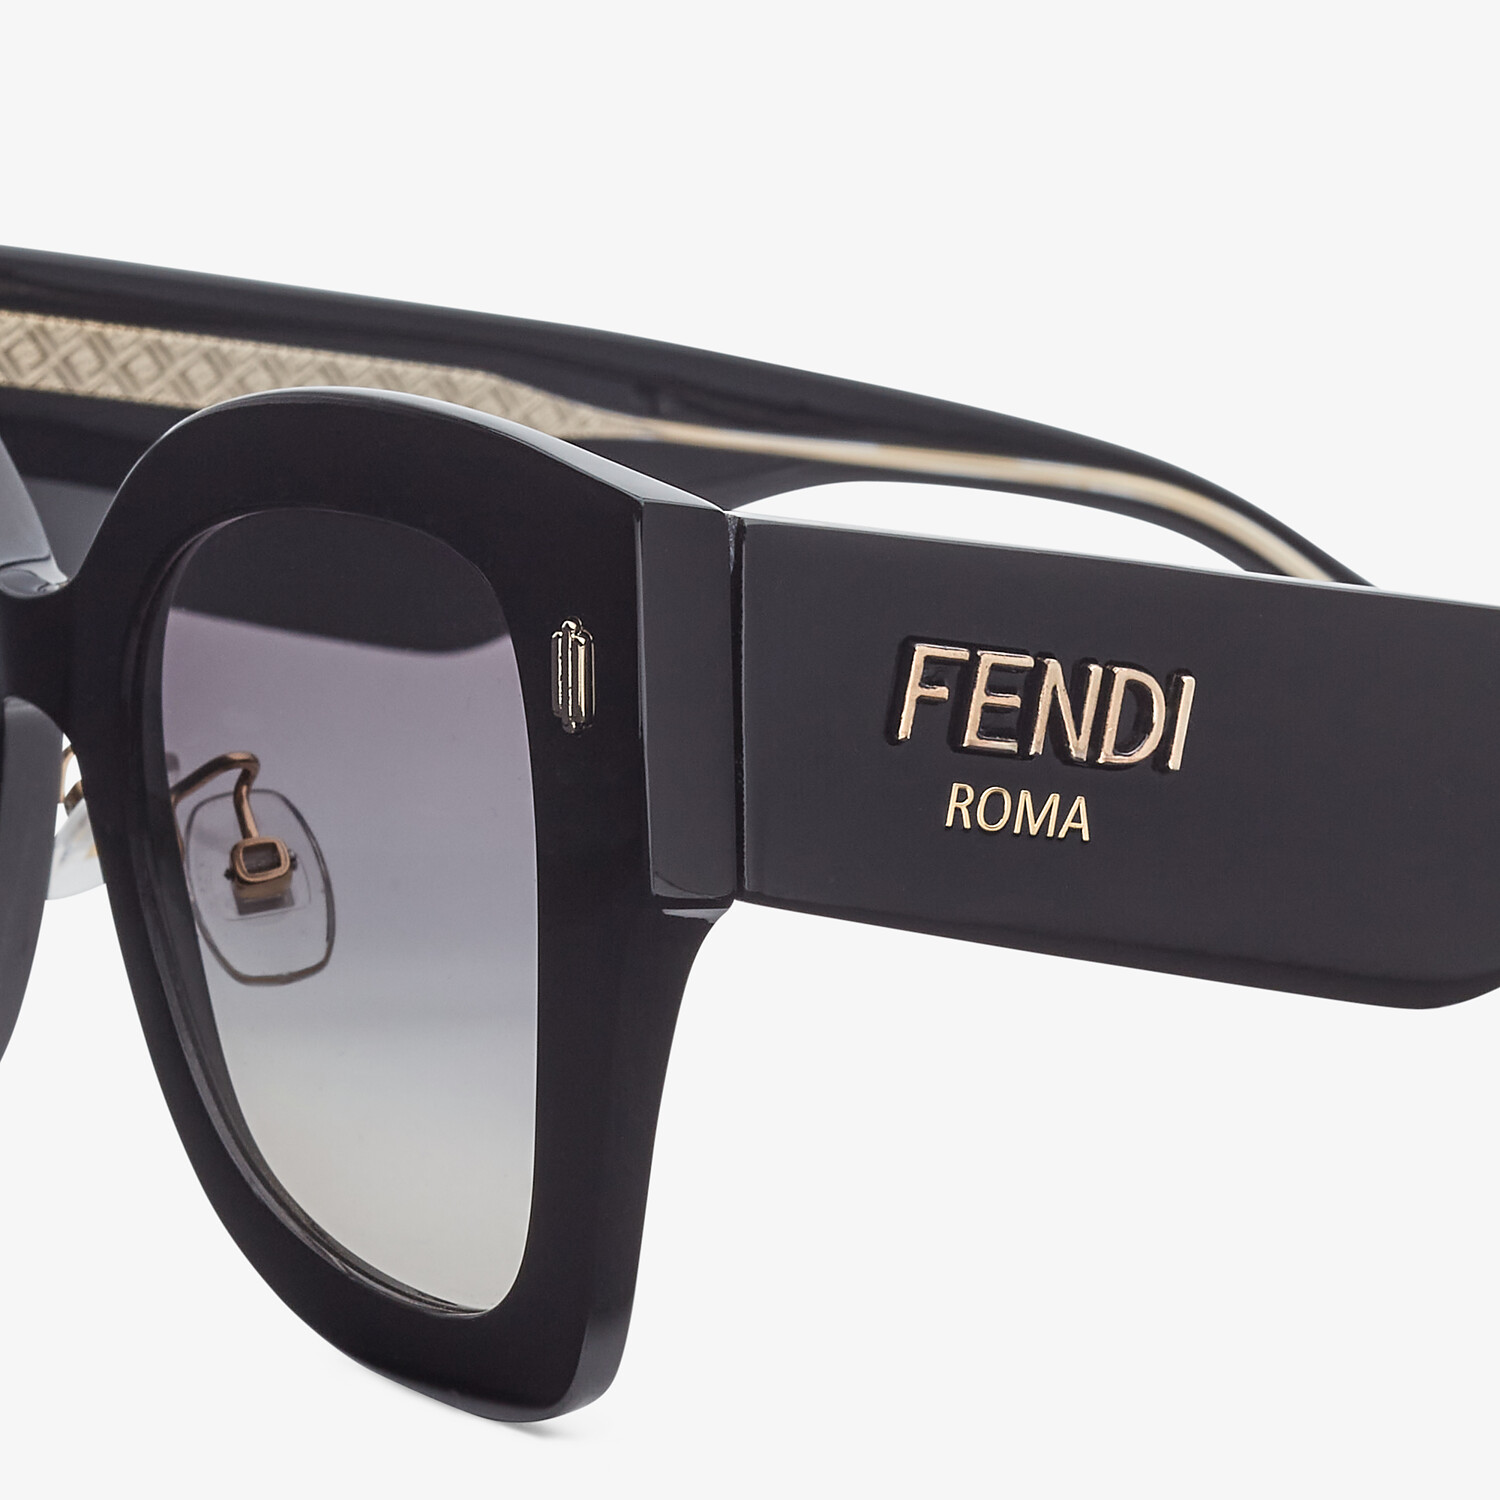 FENDI FENDI ROMA - Black acetate sunglasses - view 3 detail